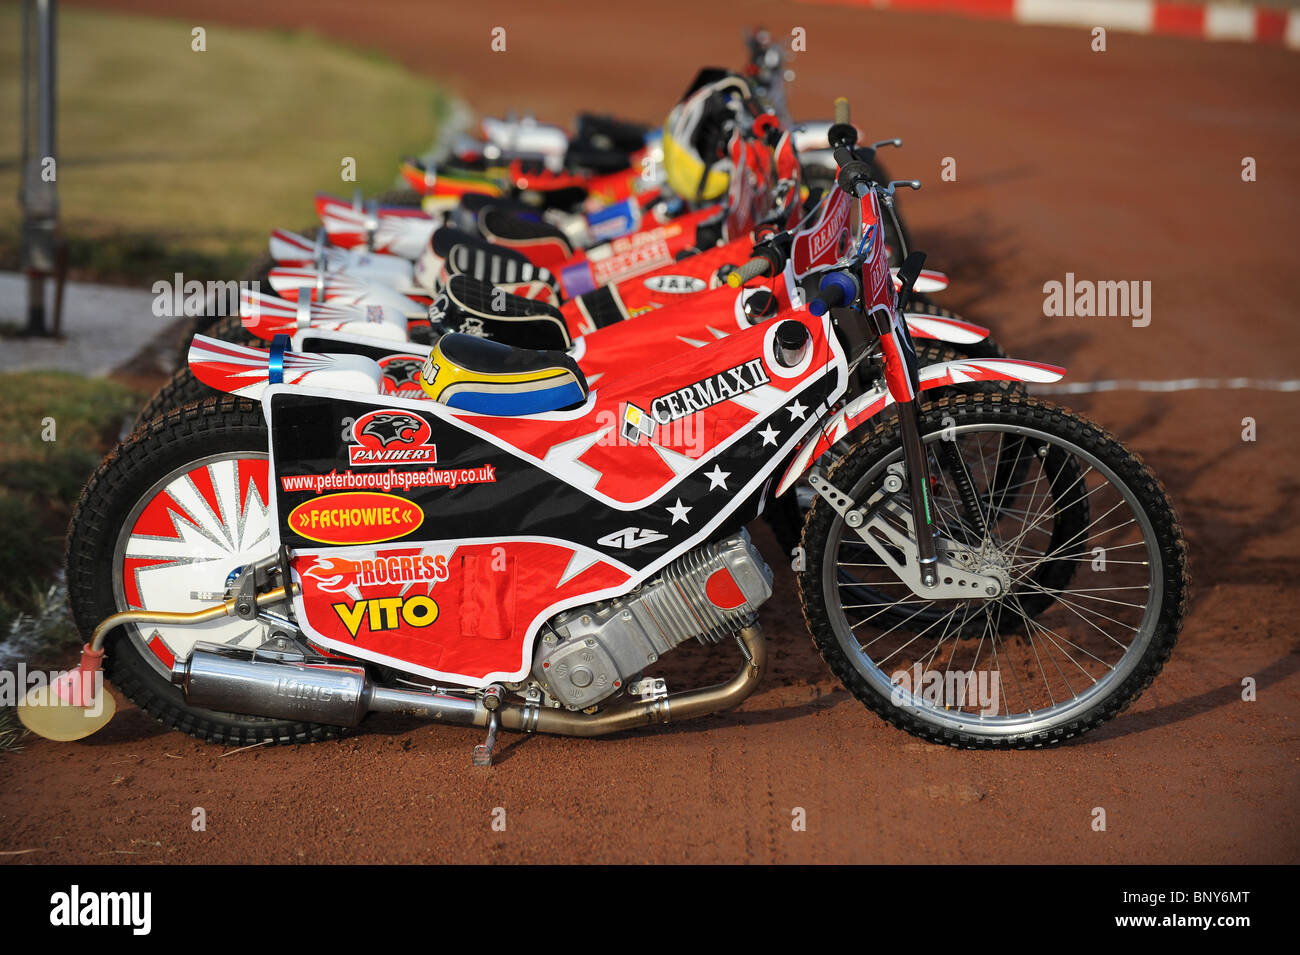 Speedway bikes are lined up on the track before racing  - Stock Image